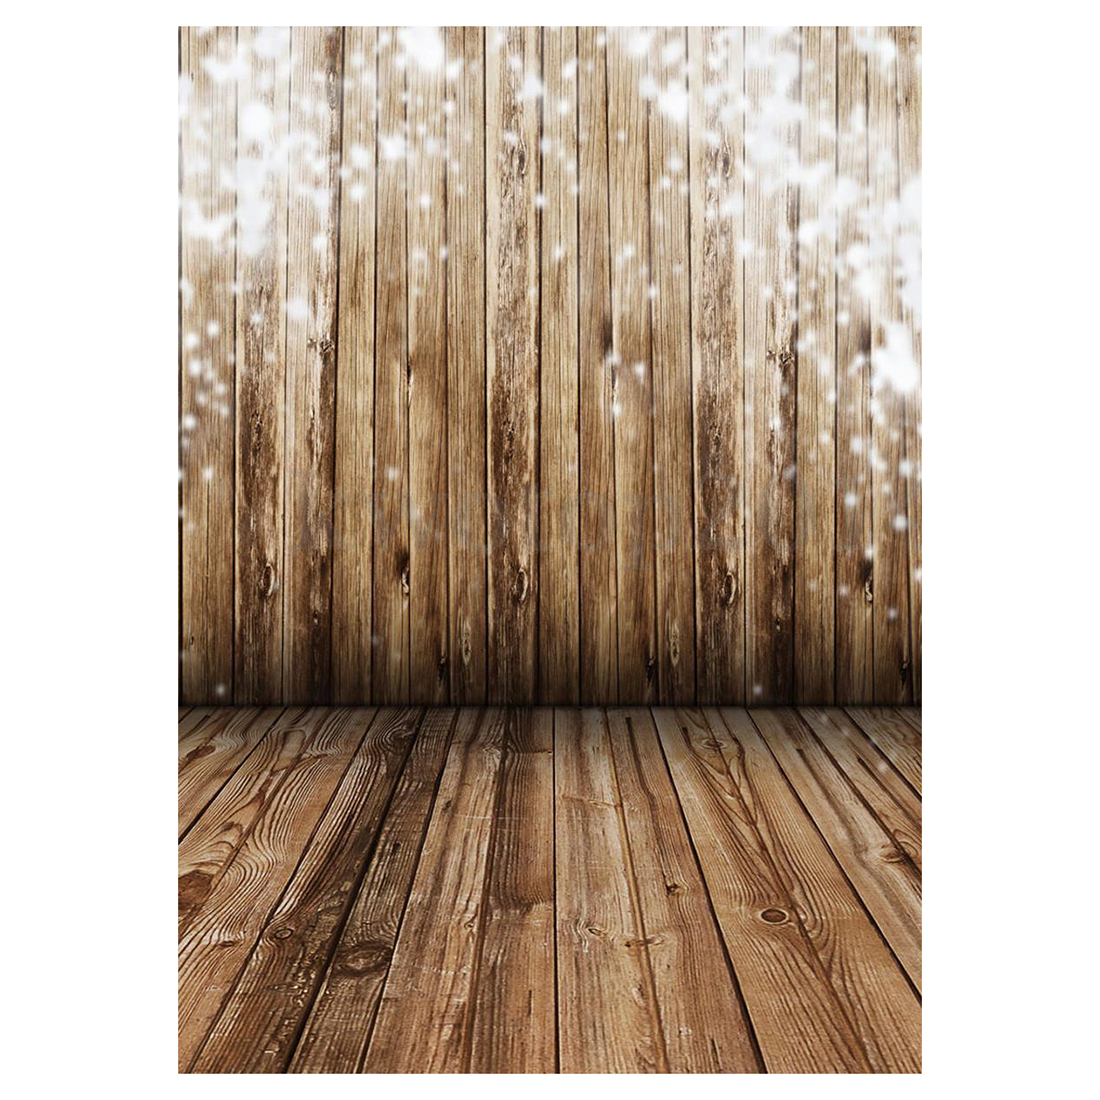 3X5FT Wood Wall Floor Vinyl Photography Backdrop Photo Background Studio Props promotion 6pcs option 100